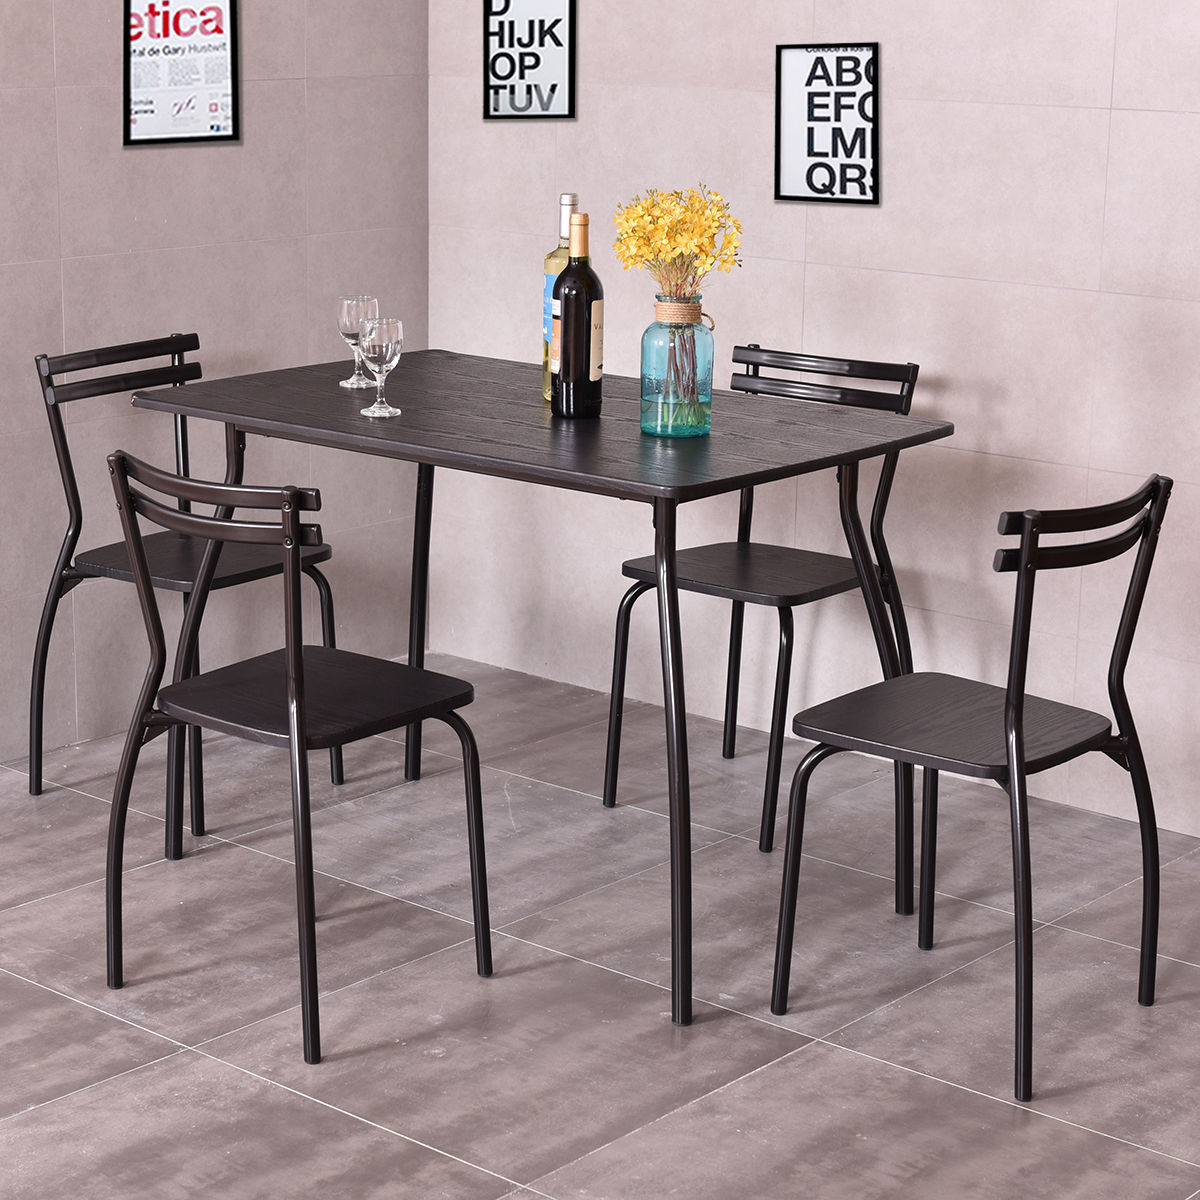 Giantex 5 Piece Dining Set Table and 4 Chairs Modern Home Kitchen Room Breakfast Furnitu ...